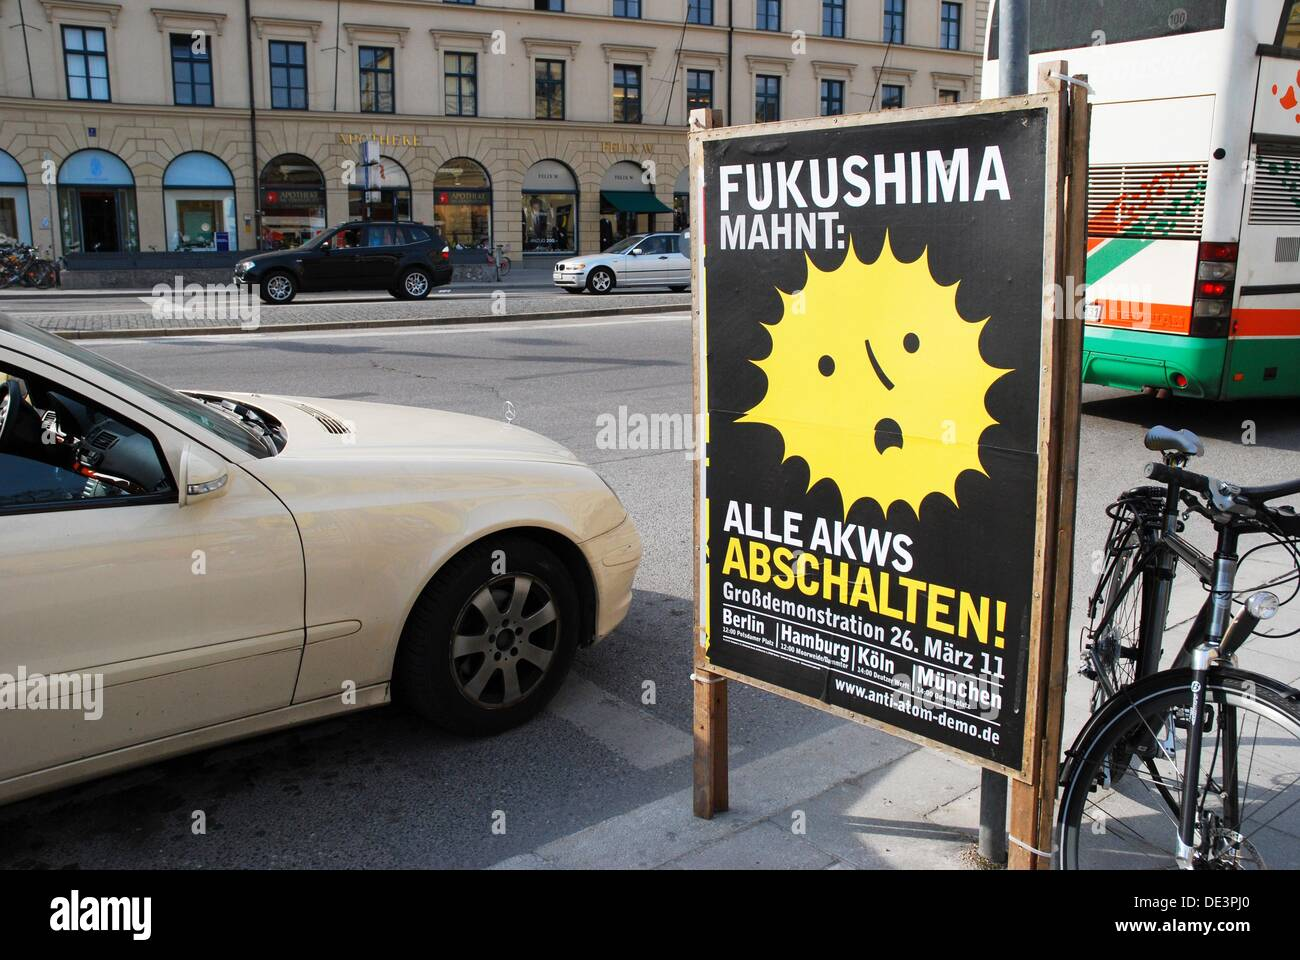 Poster against Fukushima nuclear power and calls for the demonstration on in Munich - Stock Image